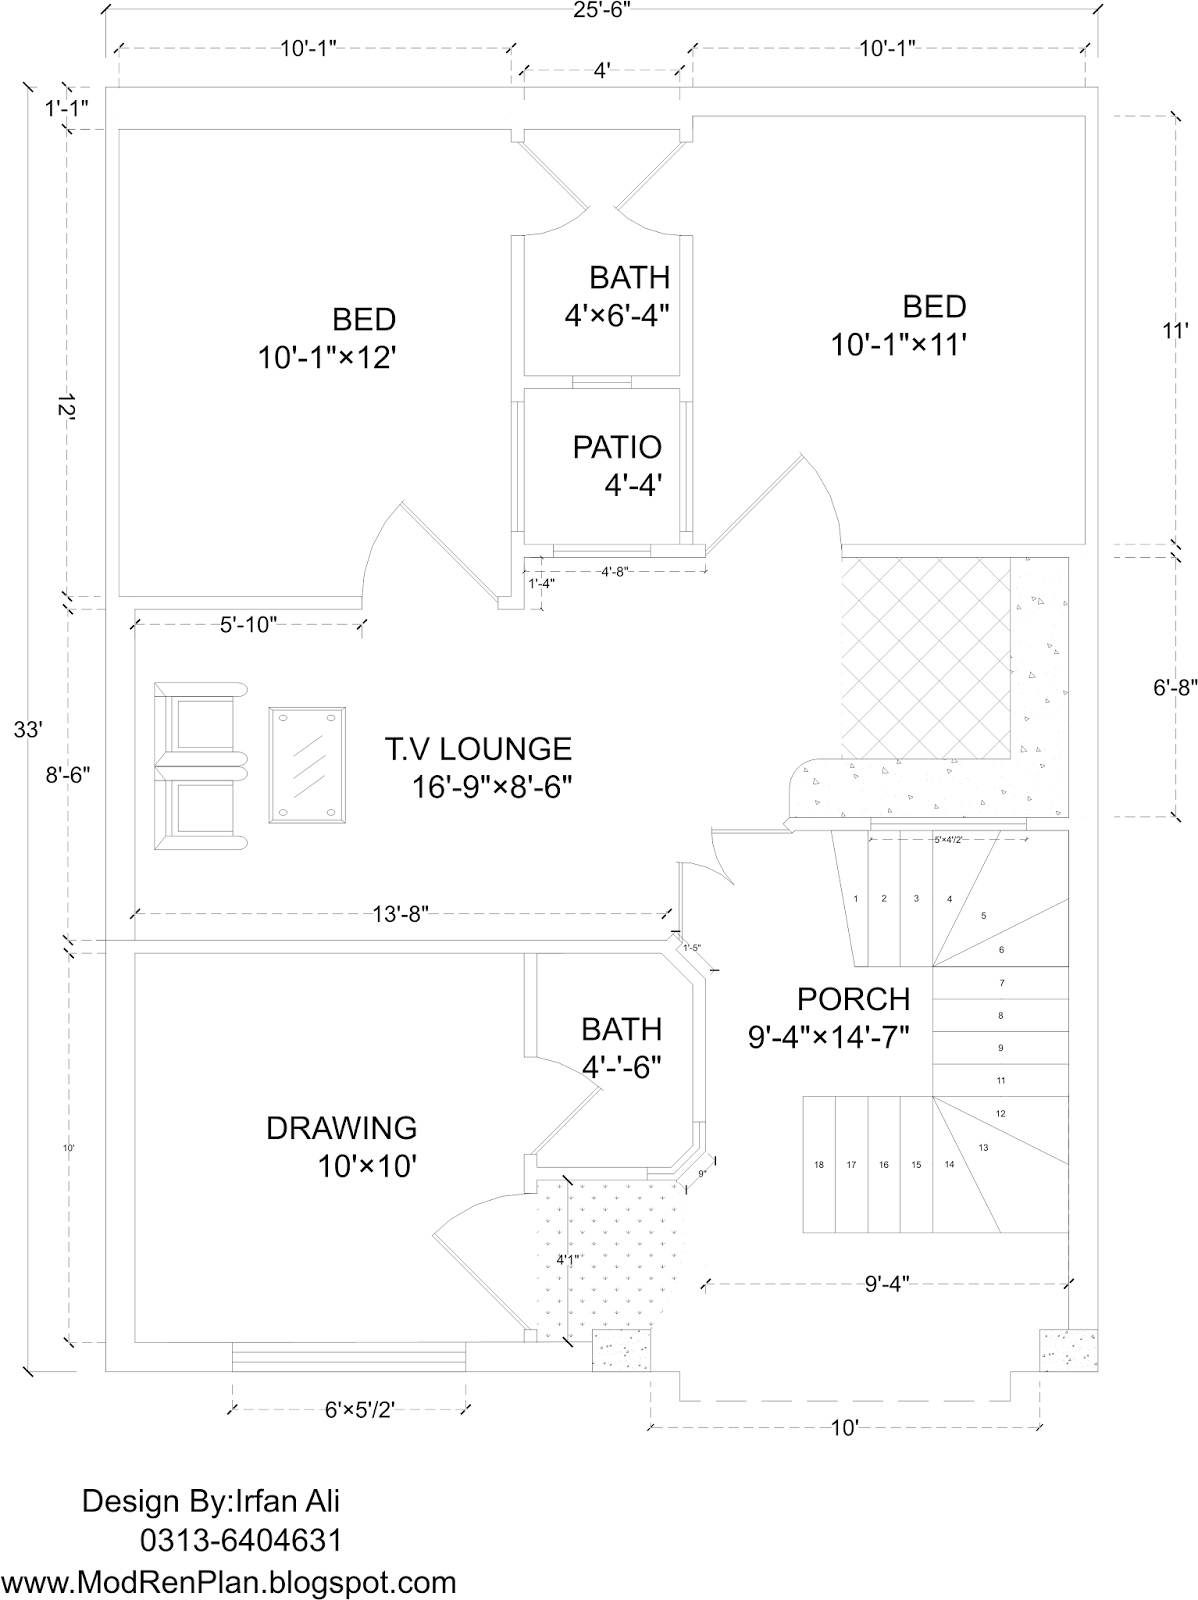 5 marla house plan and map with detail 25x33 house plan for Floor map design